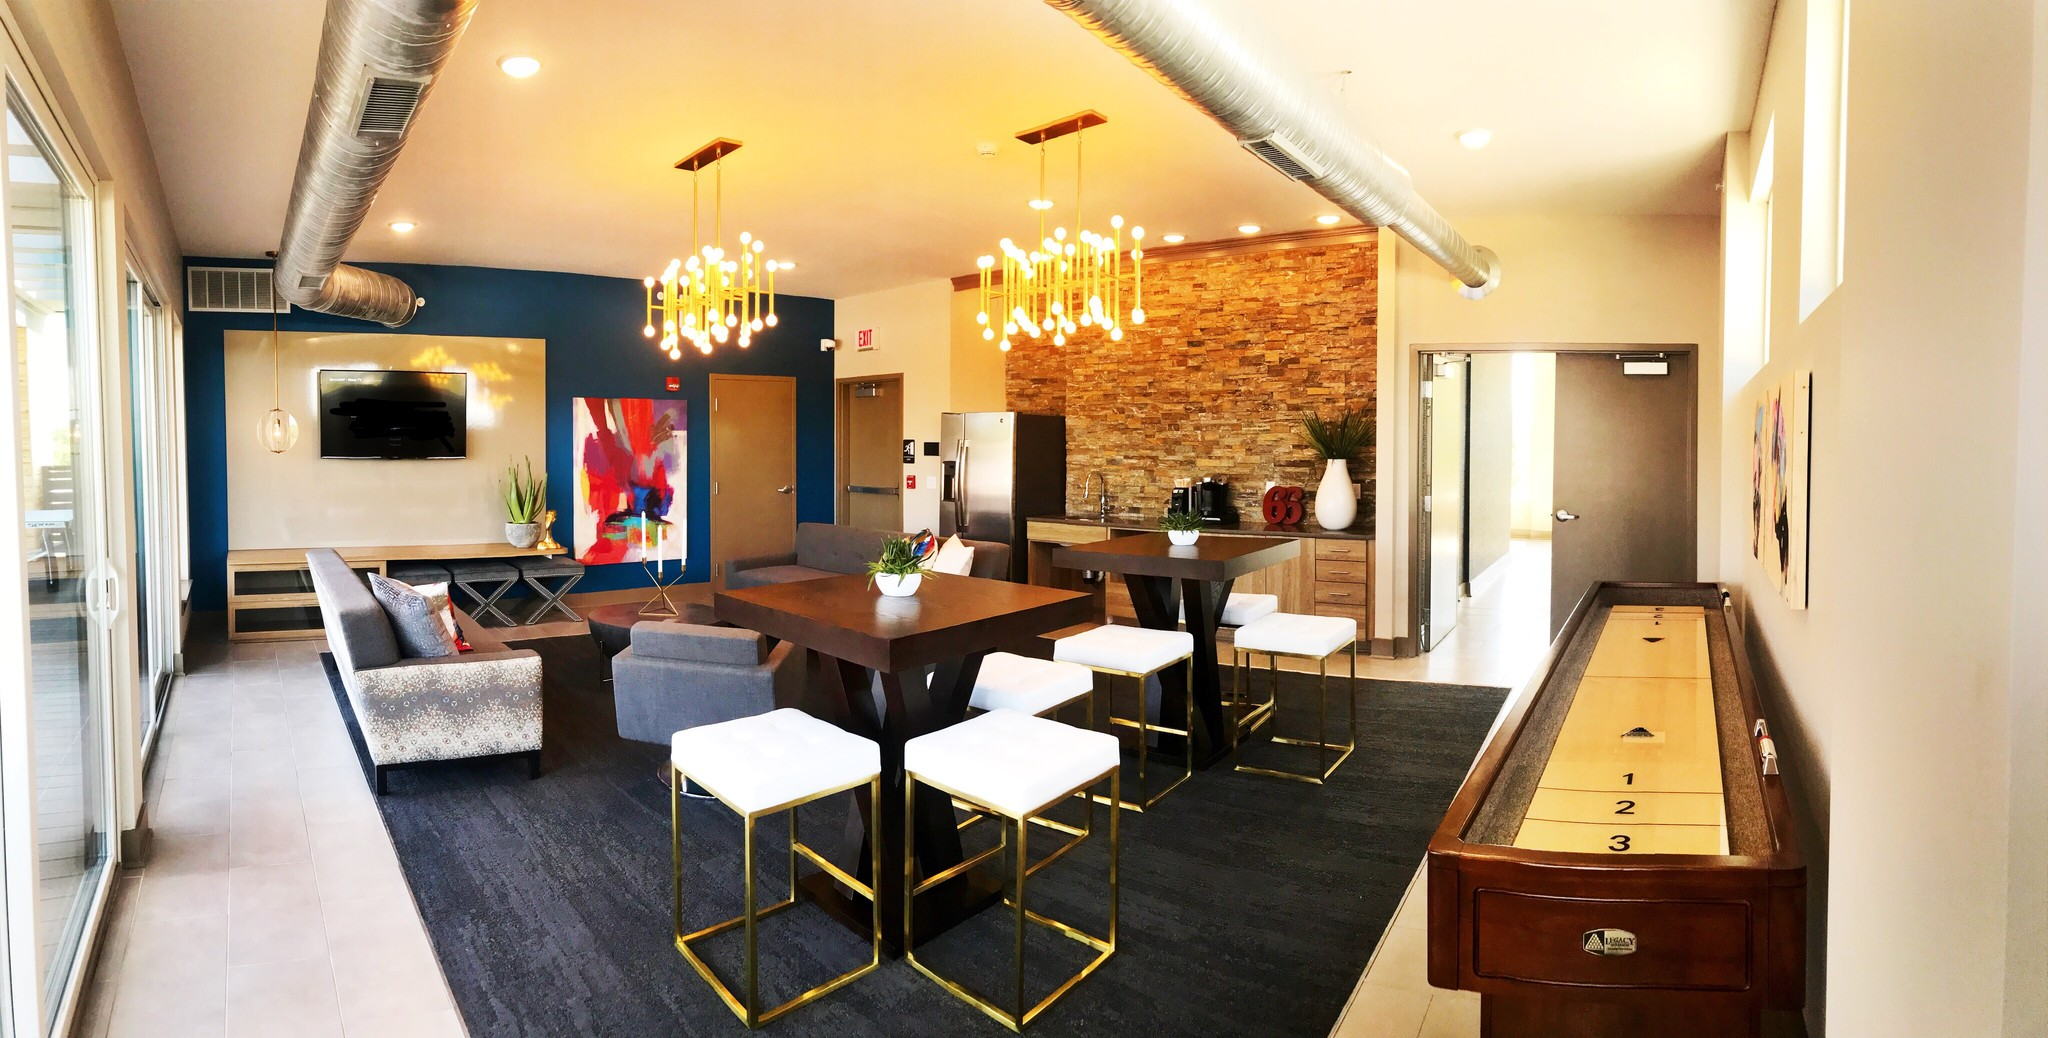 park-66-flats-indianapolis-in-resident-lounge-area.jpg